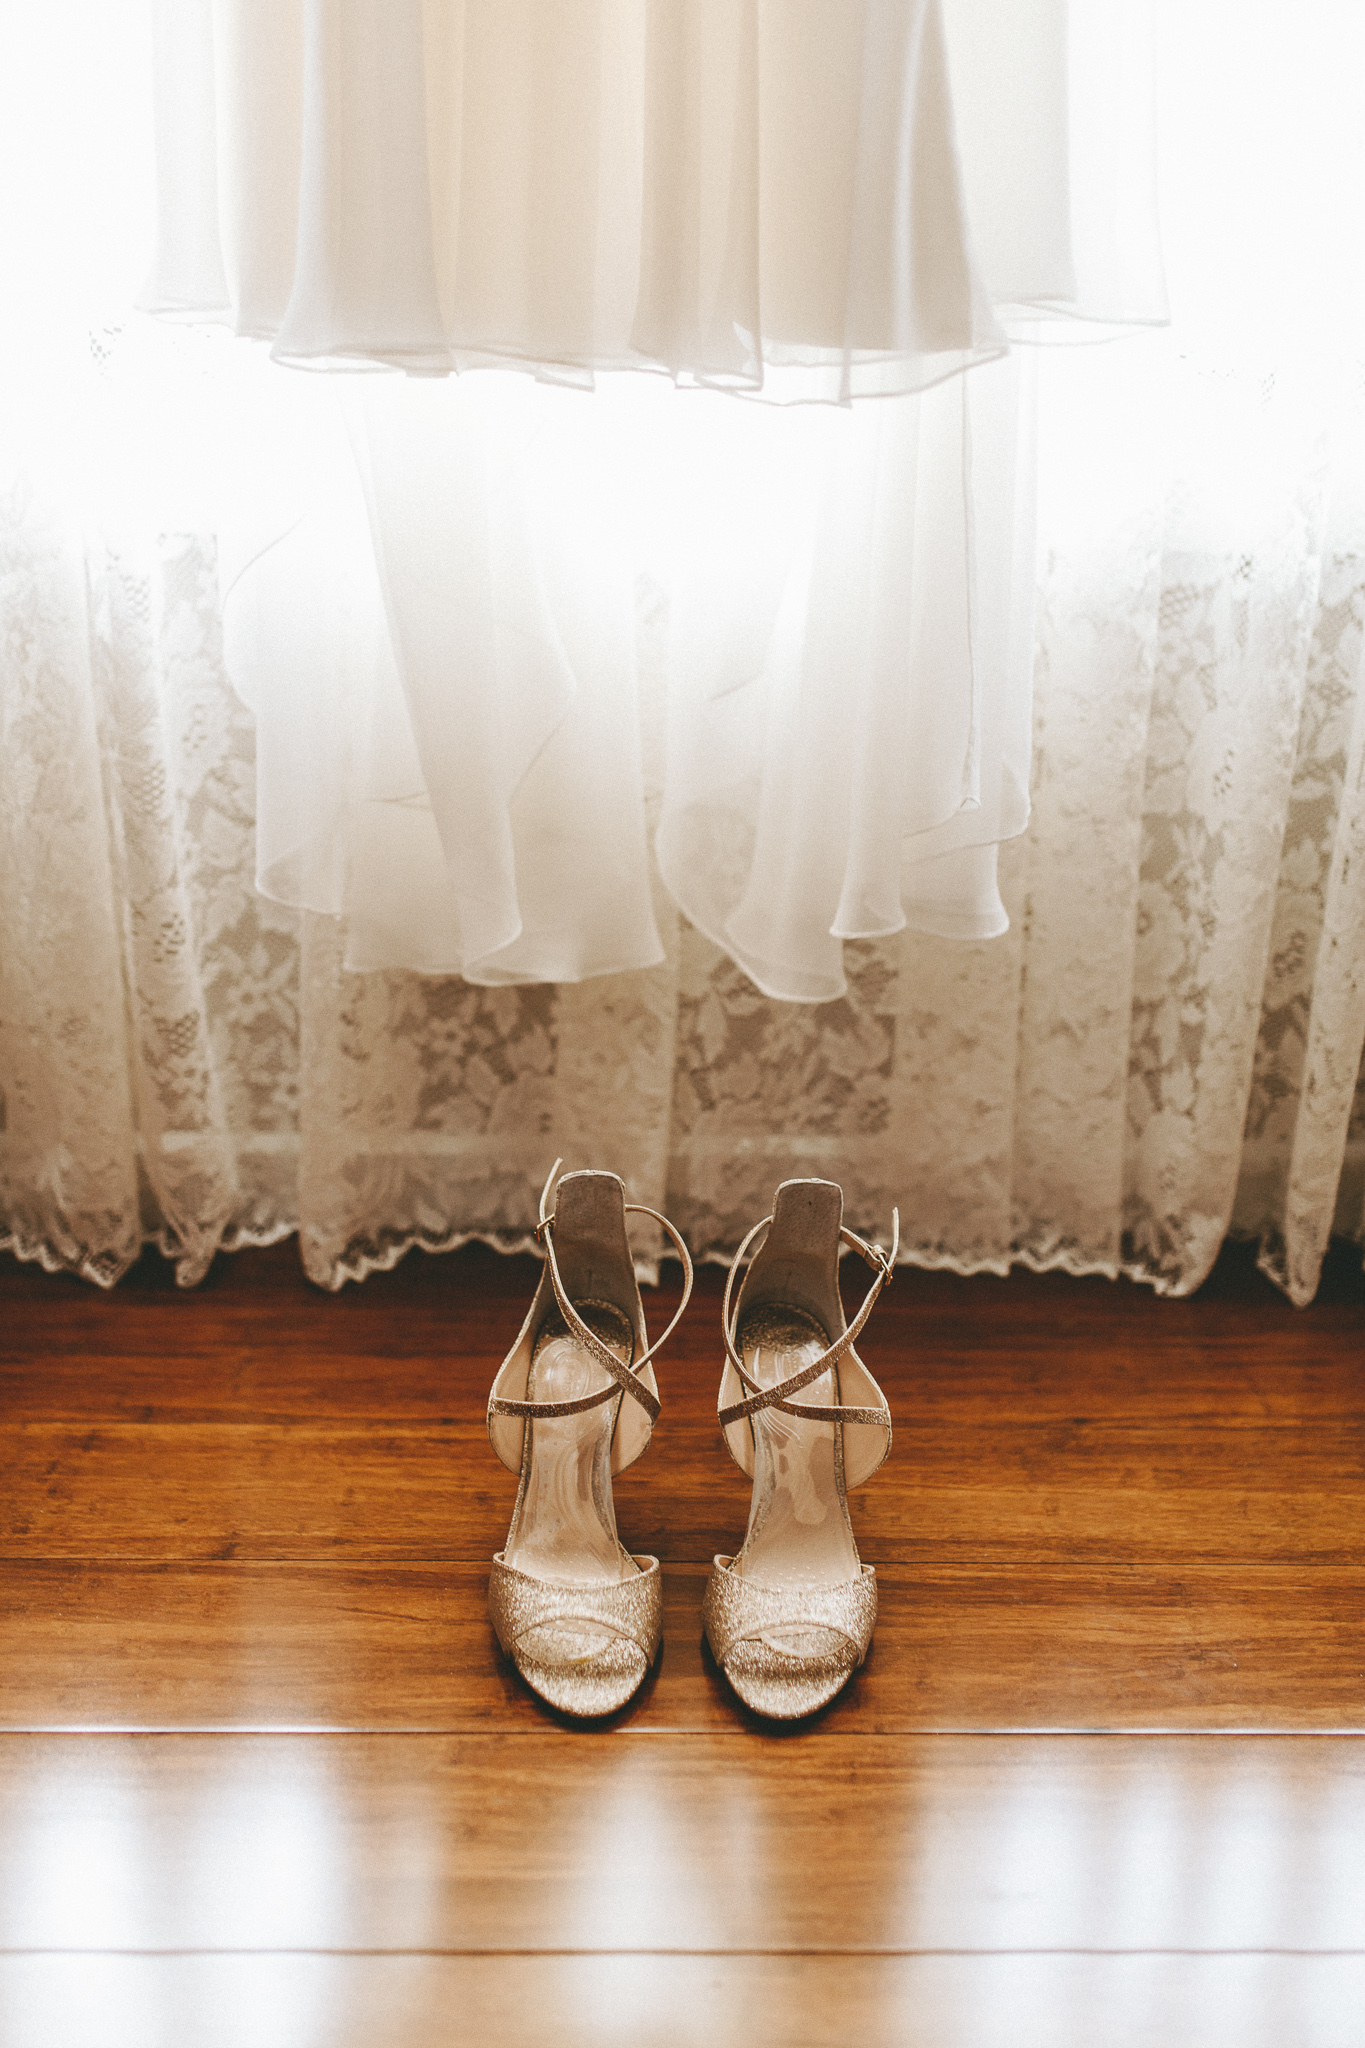 christopher morrison_adelaide wedding photographer_peter + elise_ glenelg golf club_47_7512.jpg